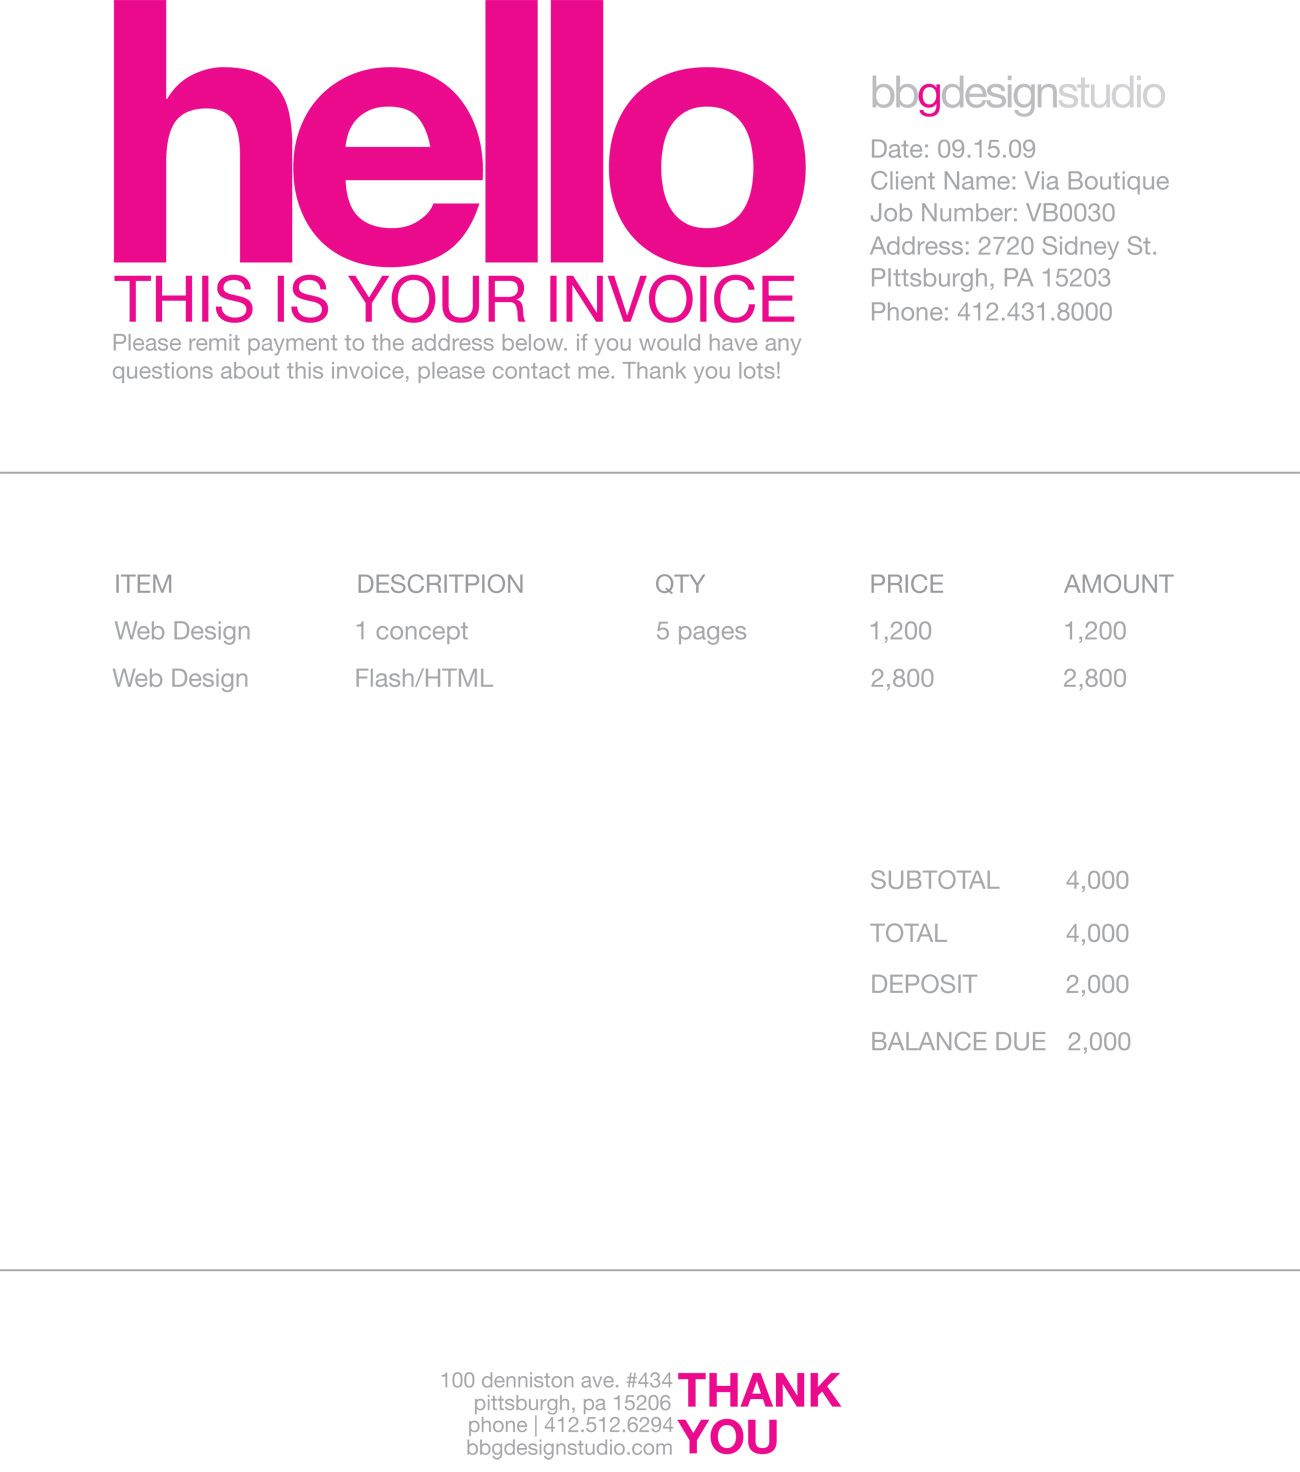 Totallocalus  Marvelous  Images About Invoice Design On Pinterest With Hot Invoice Dispute Letter Besides Paypal Fee Invoice Furthermore How To Get An Invoice With Breathtaking Apps For Invoices Also Invoice Price On Car In Addition Word Invoice Template  And Toyota Sienna Invoice As Well As Painters Invoice Template Additionally Twilight Princess Invoice From Pinterestcom With Totallocalus  Hot  Images About Invoice Design On Pinterest With Breathtaking Invoice Dispute Letter Besides Paypal Fee Invoice Furthermore How To Get An Invoice And Marvelous Apps For Invoices Also Invoice Price On Car In Addition Word Invoice Template  From Pinterestcom